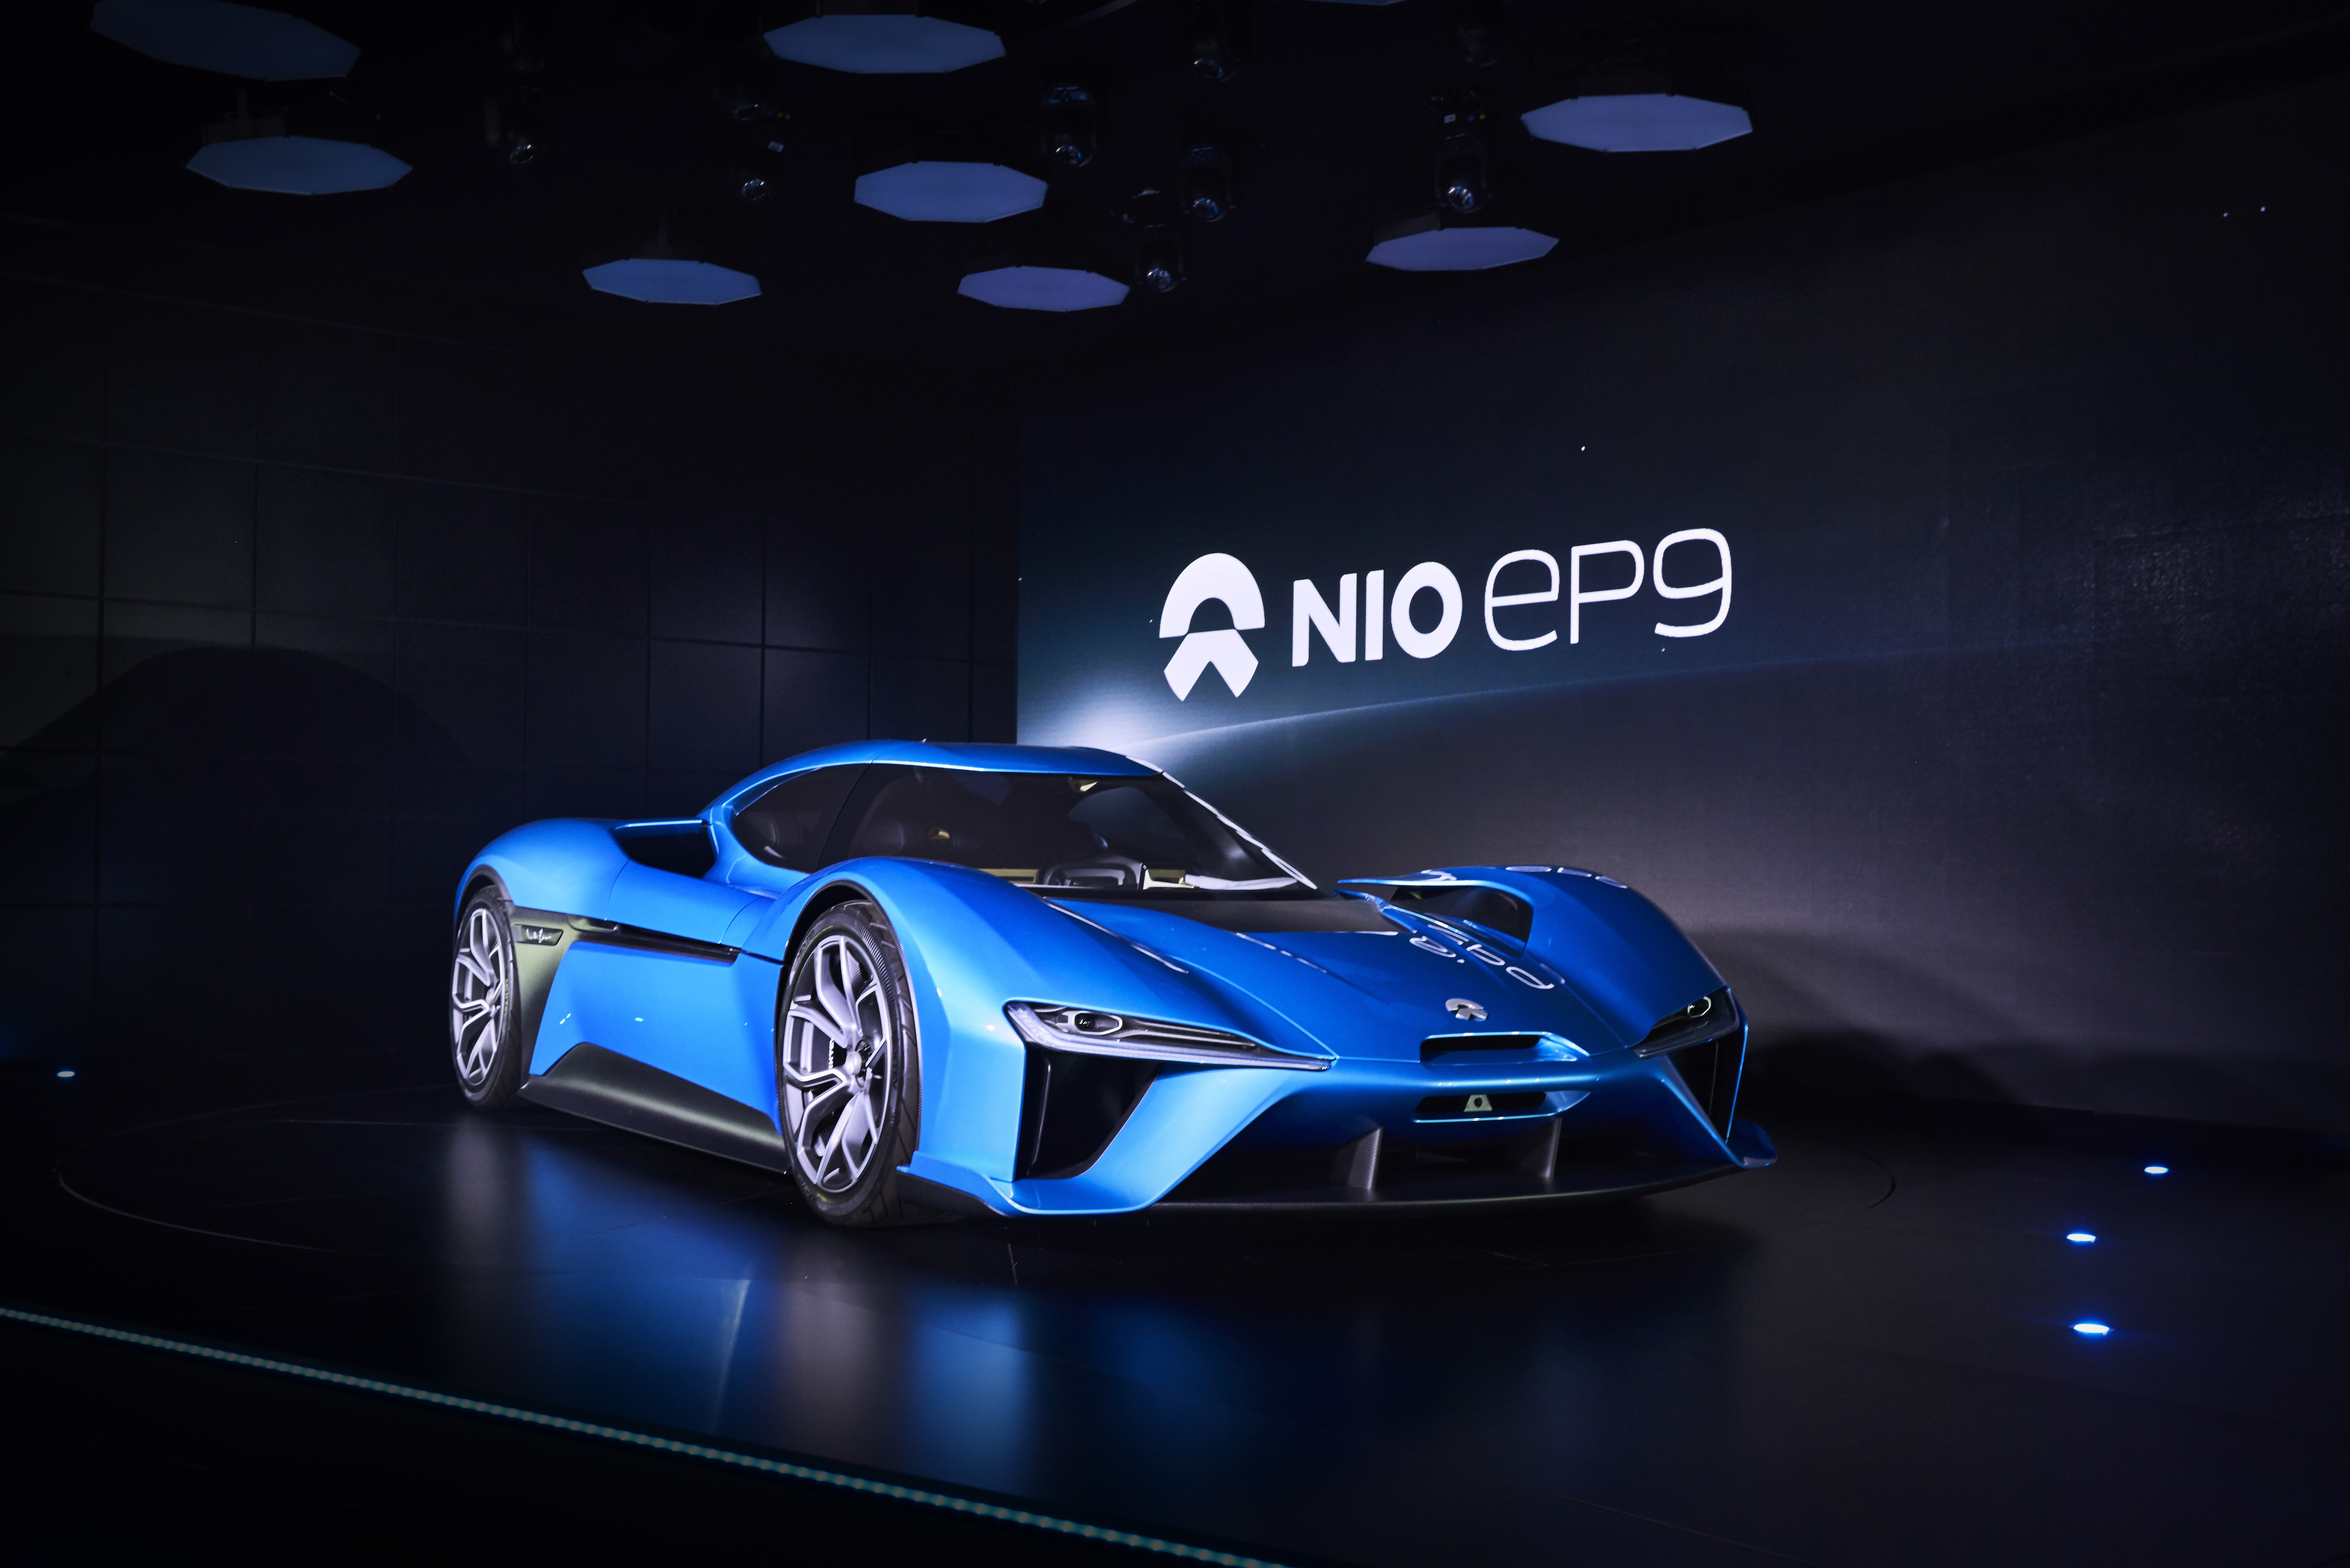 All-Electric NIO EP9 Breaks Nürburgring EV Lap Time Record